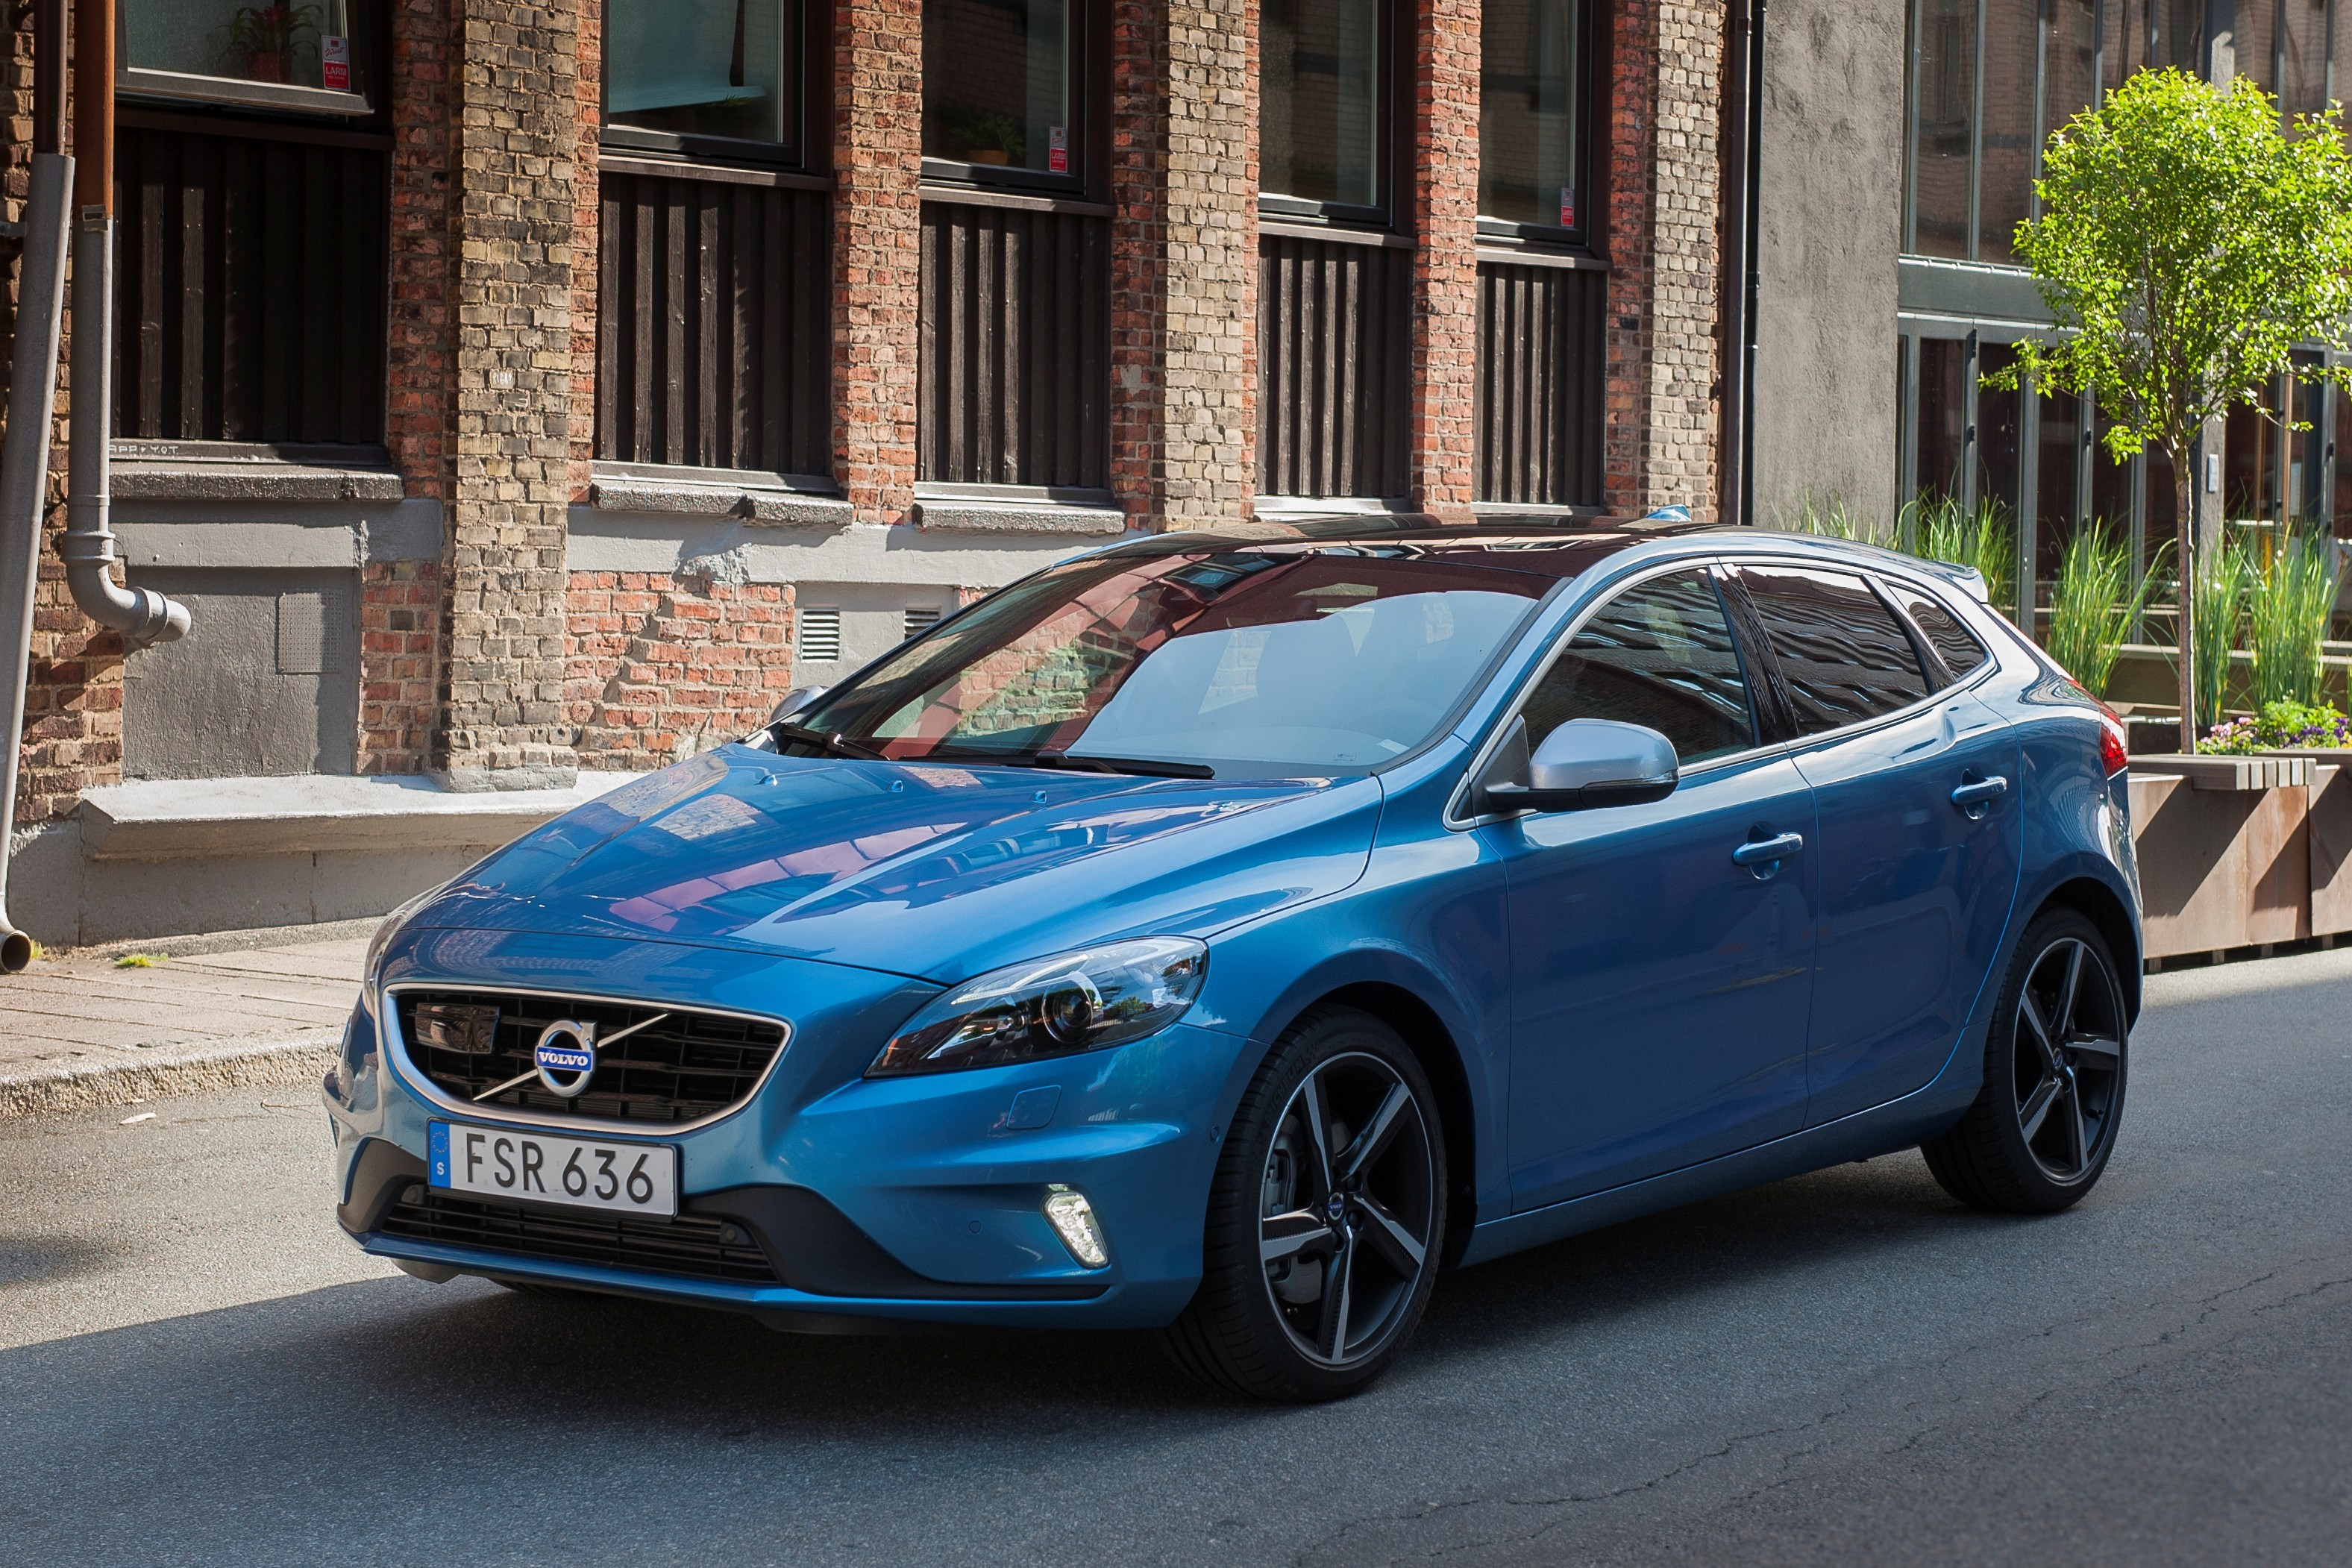 2016 Volvo Updates Announced: New T6 AWD for S60, V60 and XC60, Plus CarPlay for XC90 ...